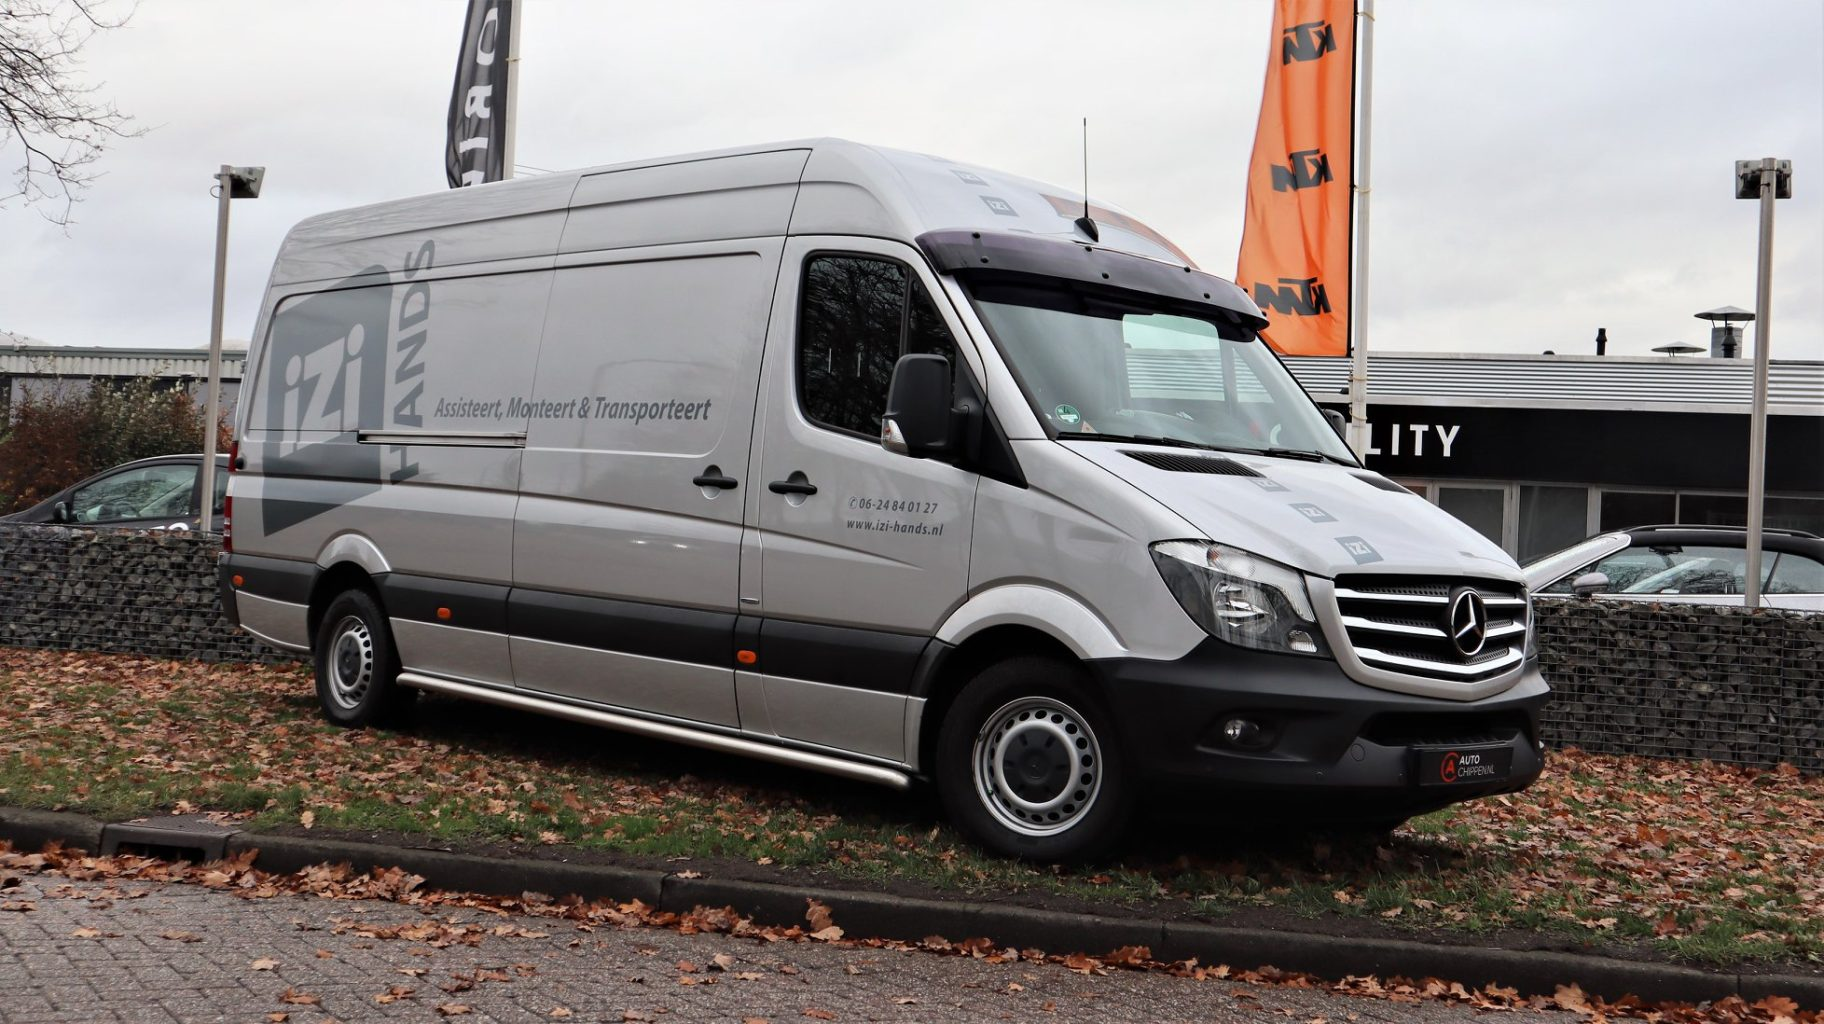 tuning mercedes benz sprinter w906 319cdi auto chippen. Black Bedroom Furniture Sets. Home Design Ideas